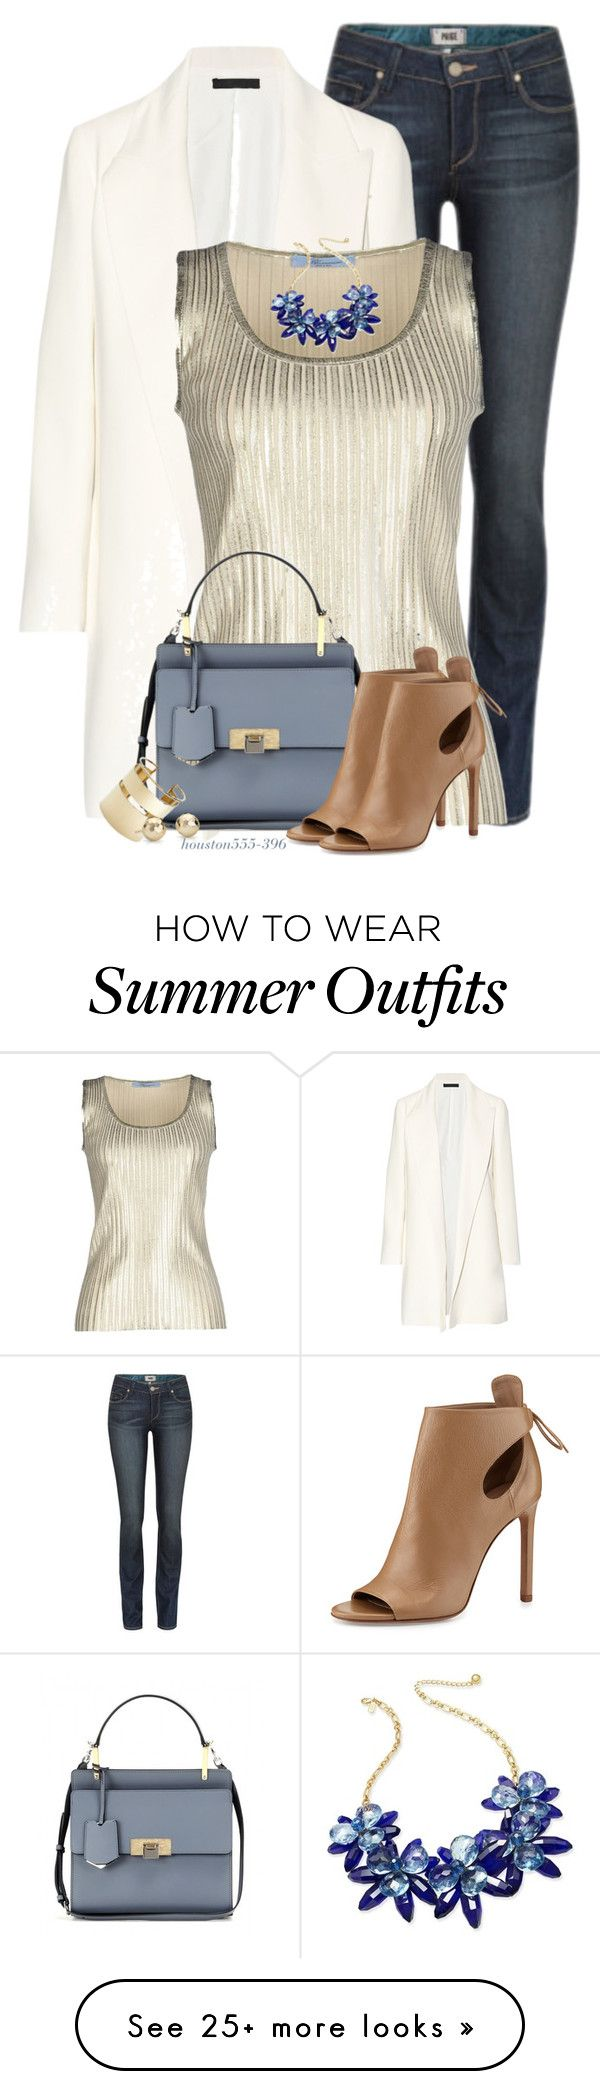 """""""Looking on the bright side"""" by houston555-396 on Polyvore featuring P..."""